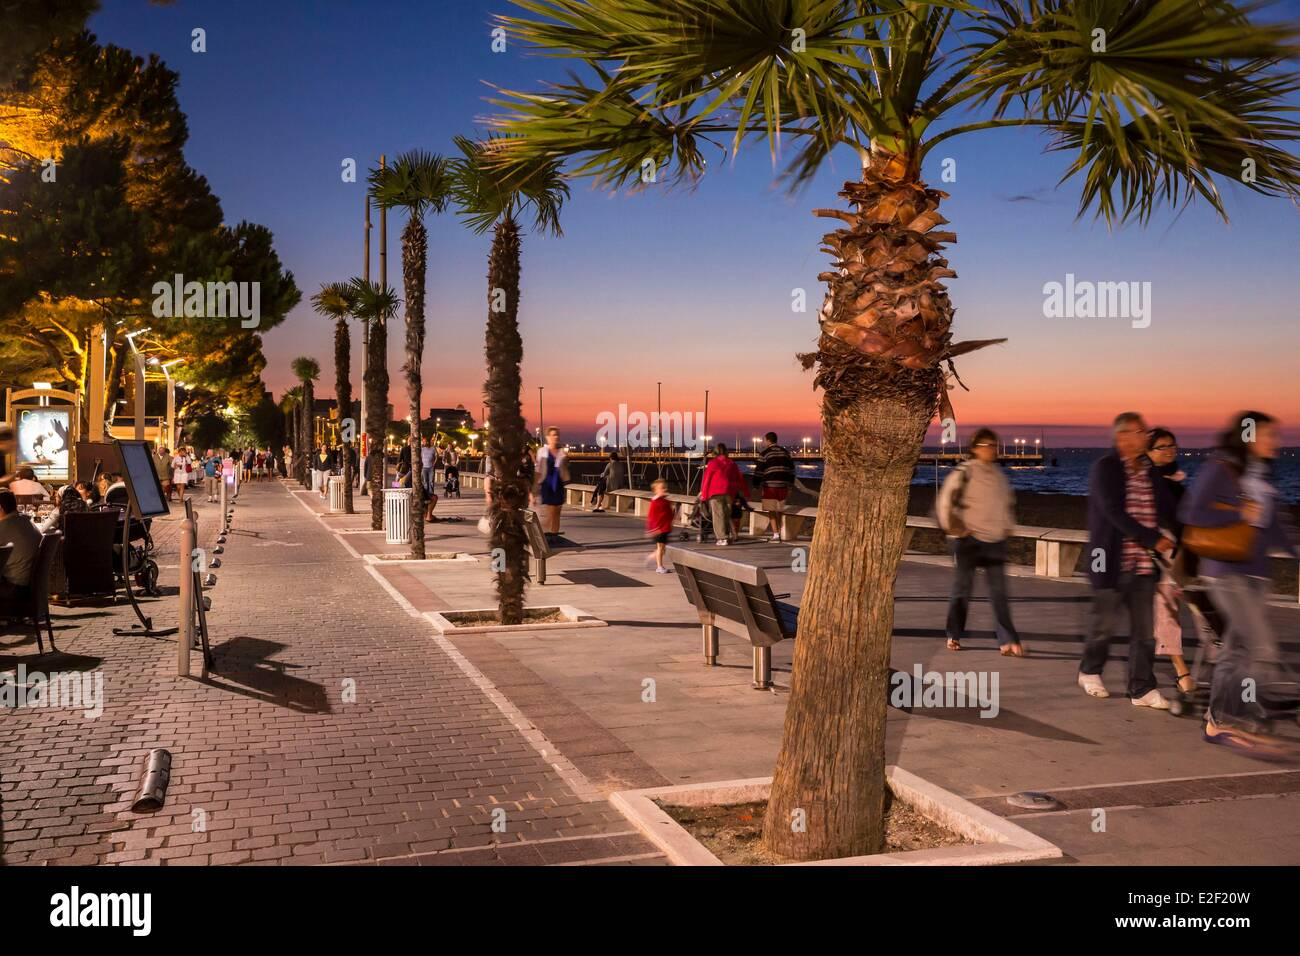 France, le Bassin d'Arcachon, Arcachon, the waterfront - Stock Image